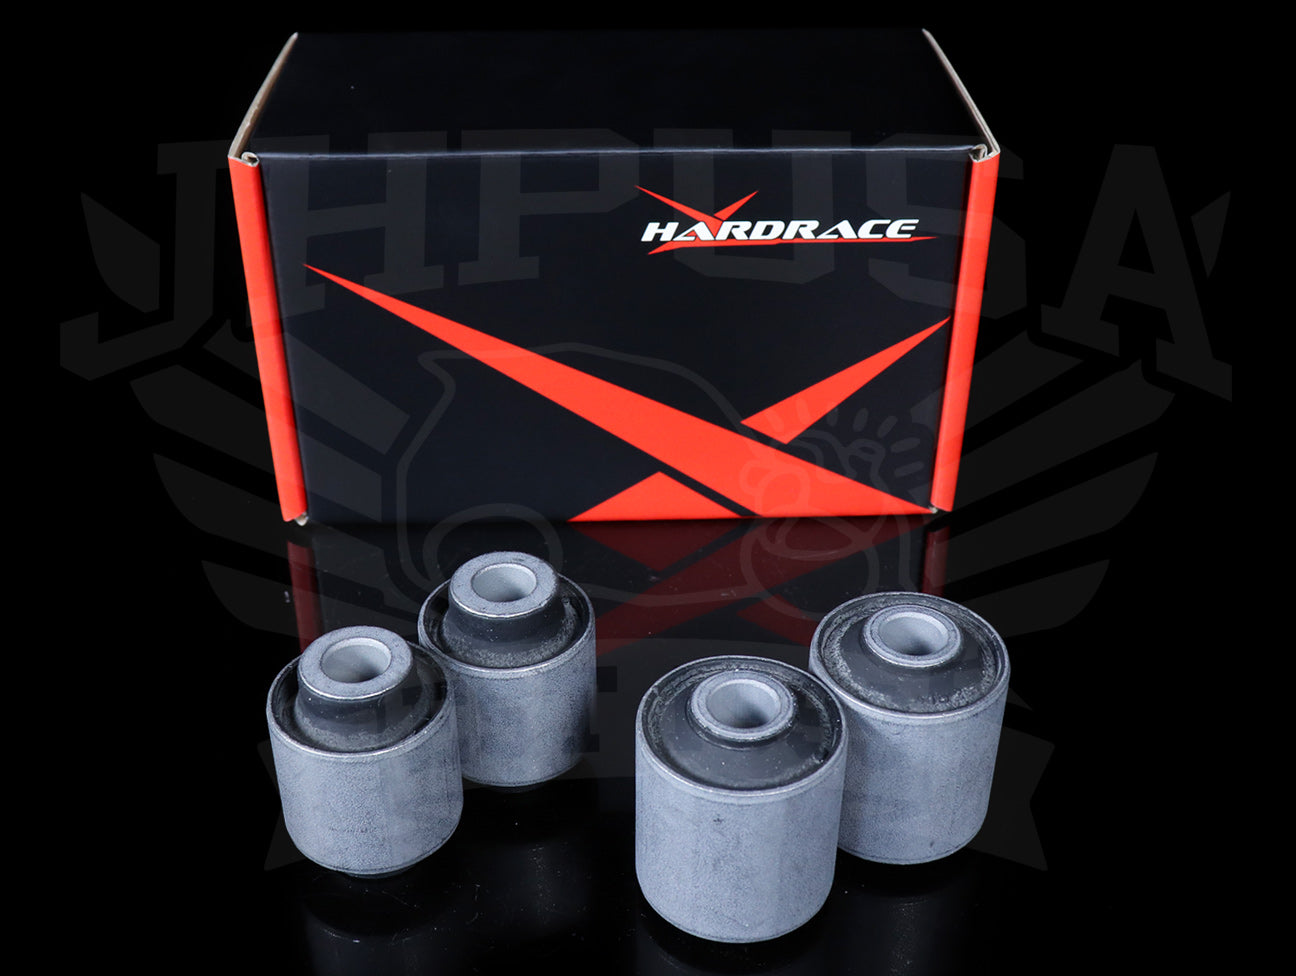 Hardrace Front Lower Control Arm Bushings (Hard Rubber) - 92-95 Civic / 94-01 Integra